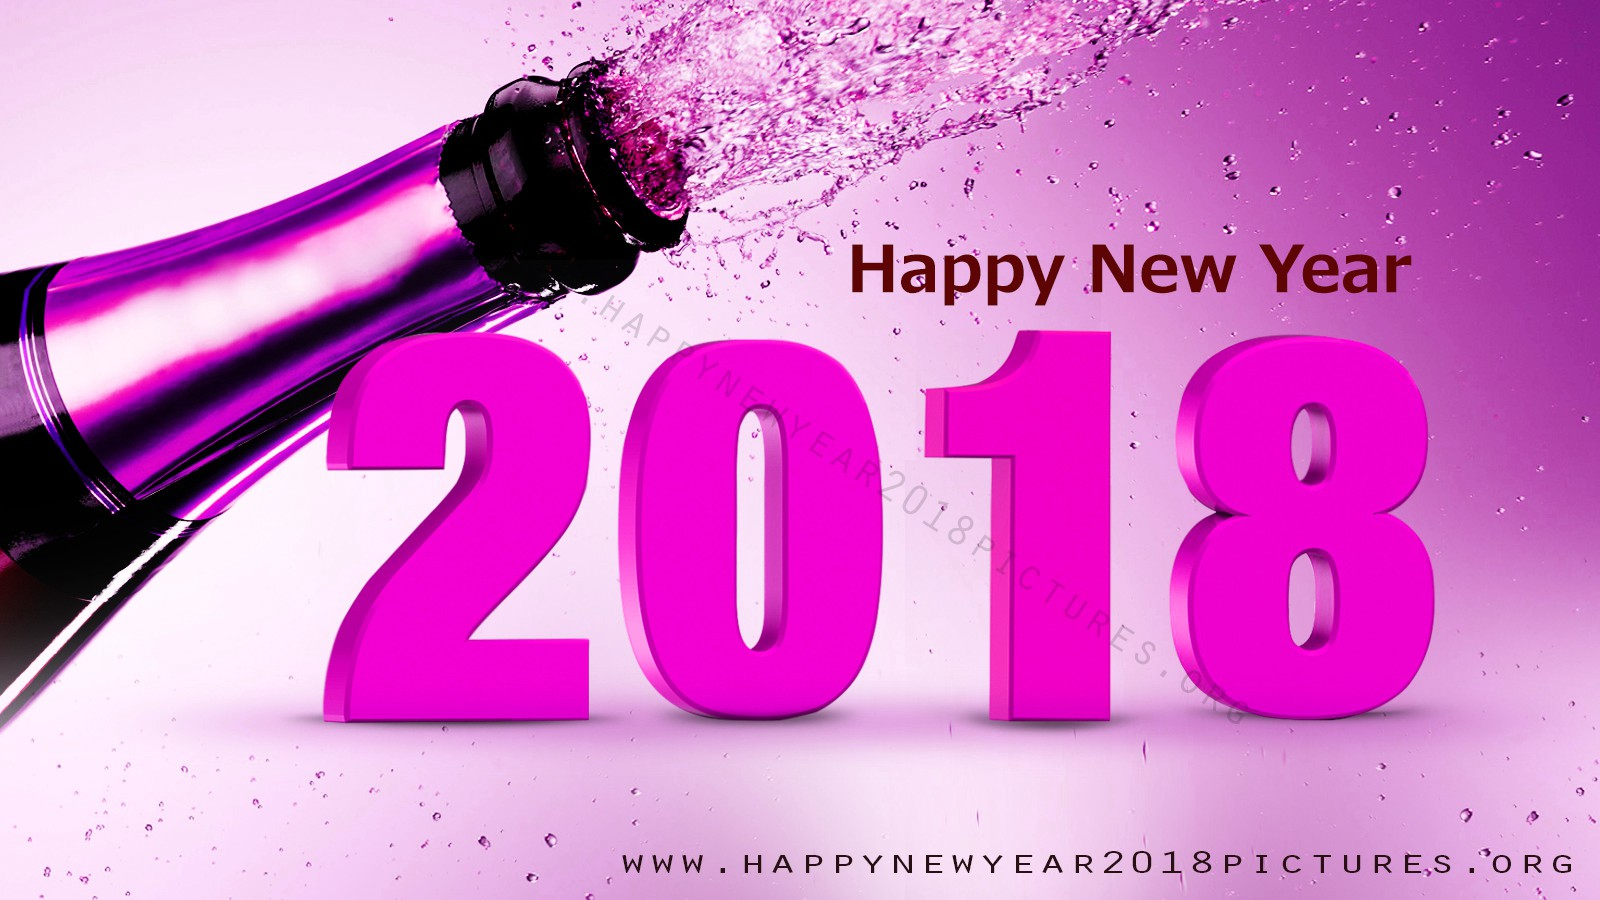 Happy New Year 2018 Greetings Happy New Year 2018 Images Wishes